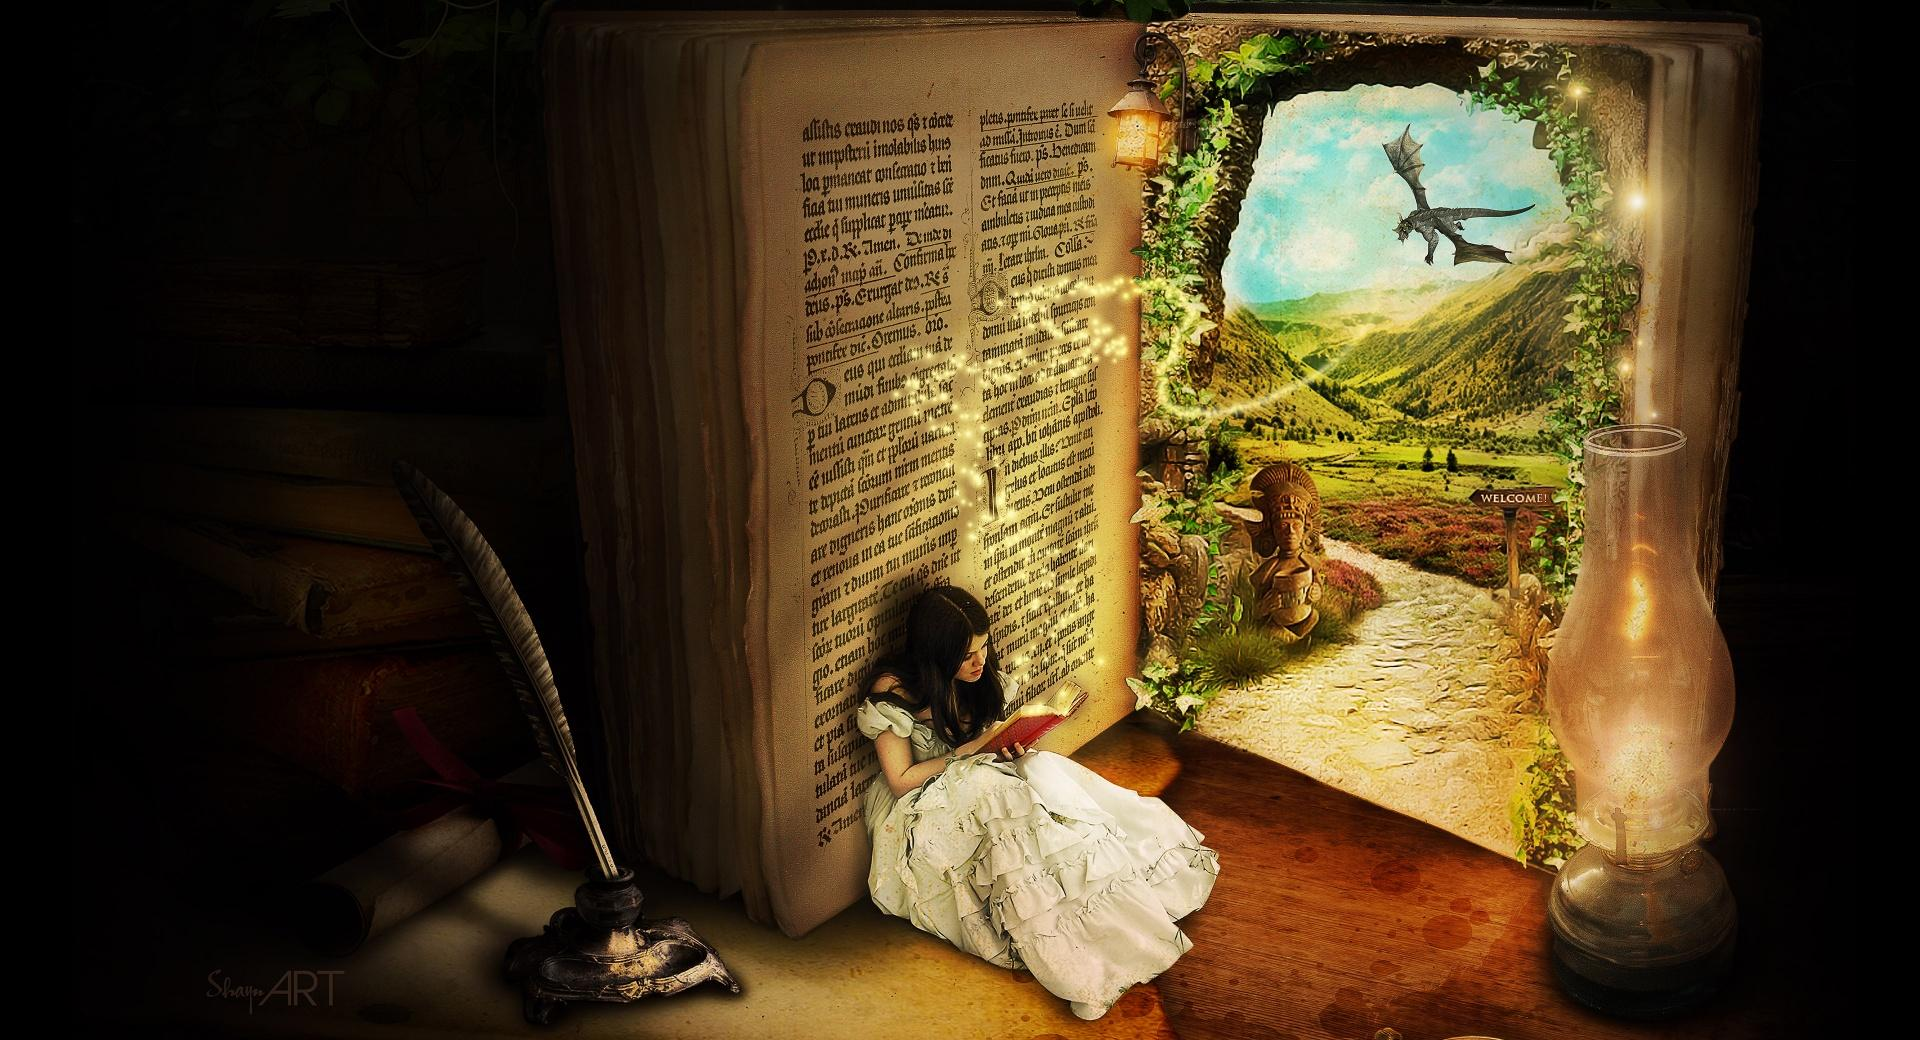 The Book Of Secrets by ShaynART wallpapers HD quality